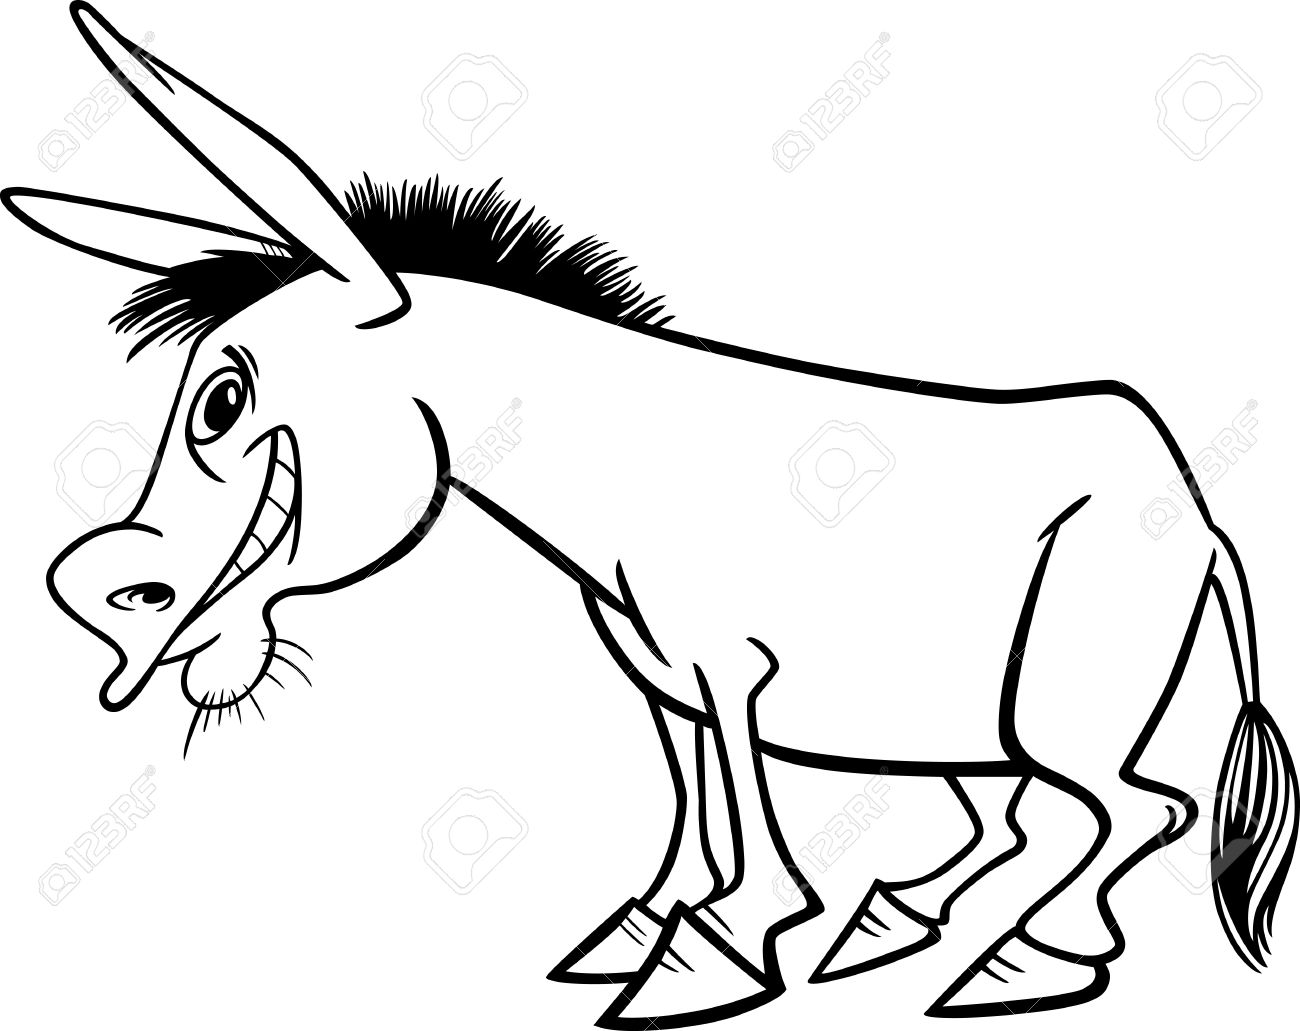 1300x1031 Donkey Clipart, Suggestions For Donkey Clipart, Download Donkey